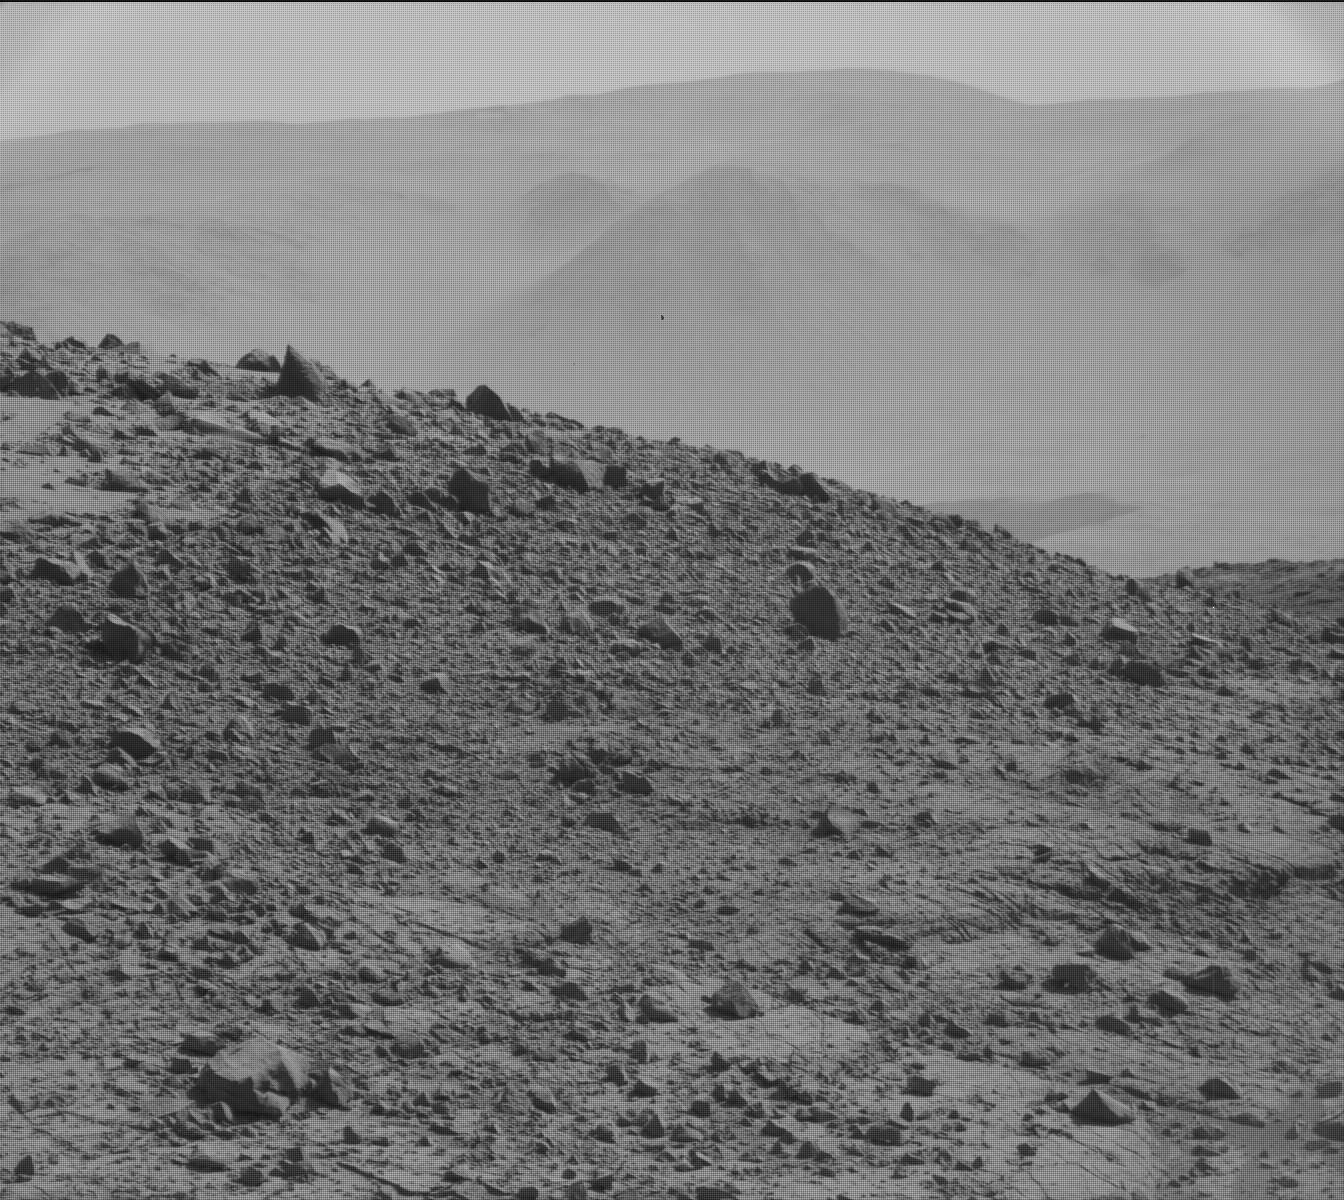 Nasa's Mars rover Curiosity acquired this image using its Mast Camera (Mastcam) on Sol 595